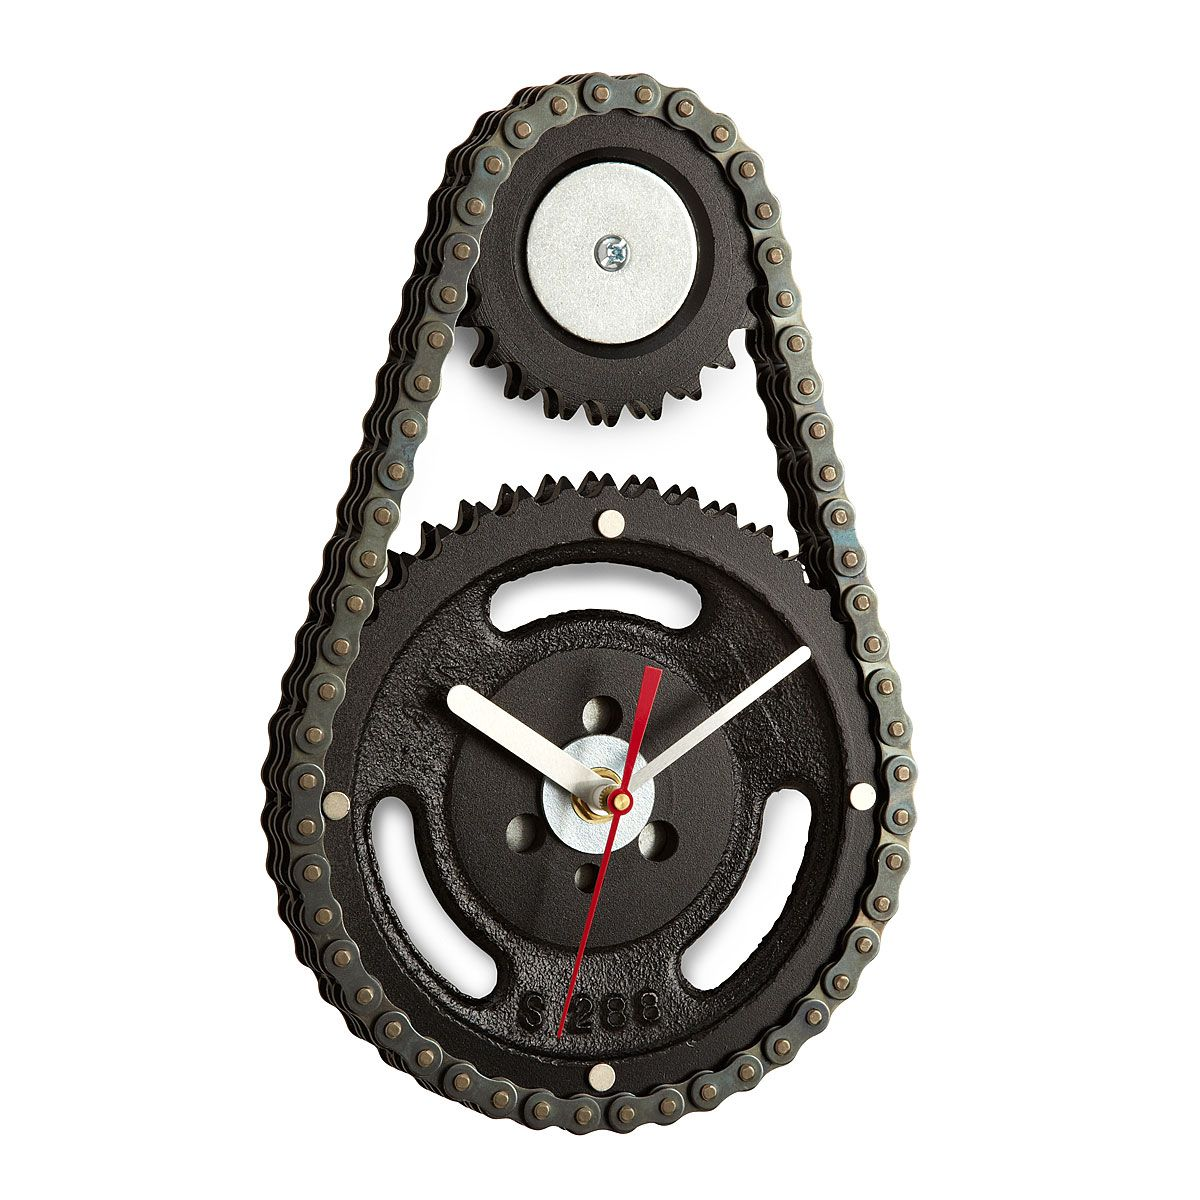 auto timing chain and gears wall clock make good time with an industrial wall clock